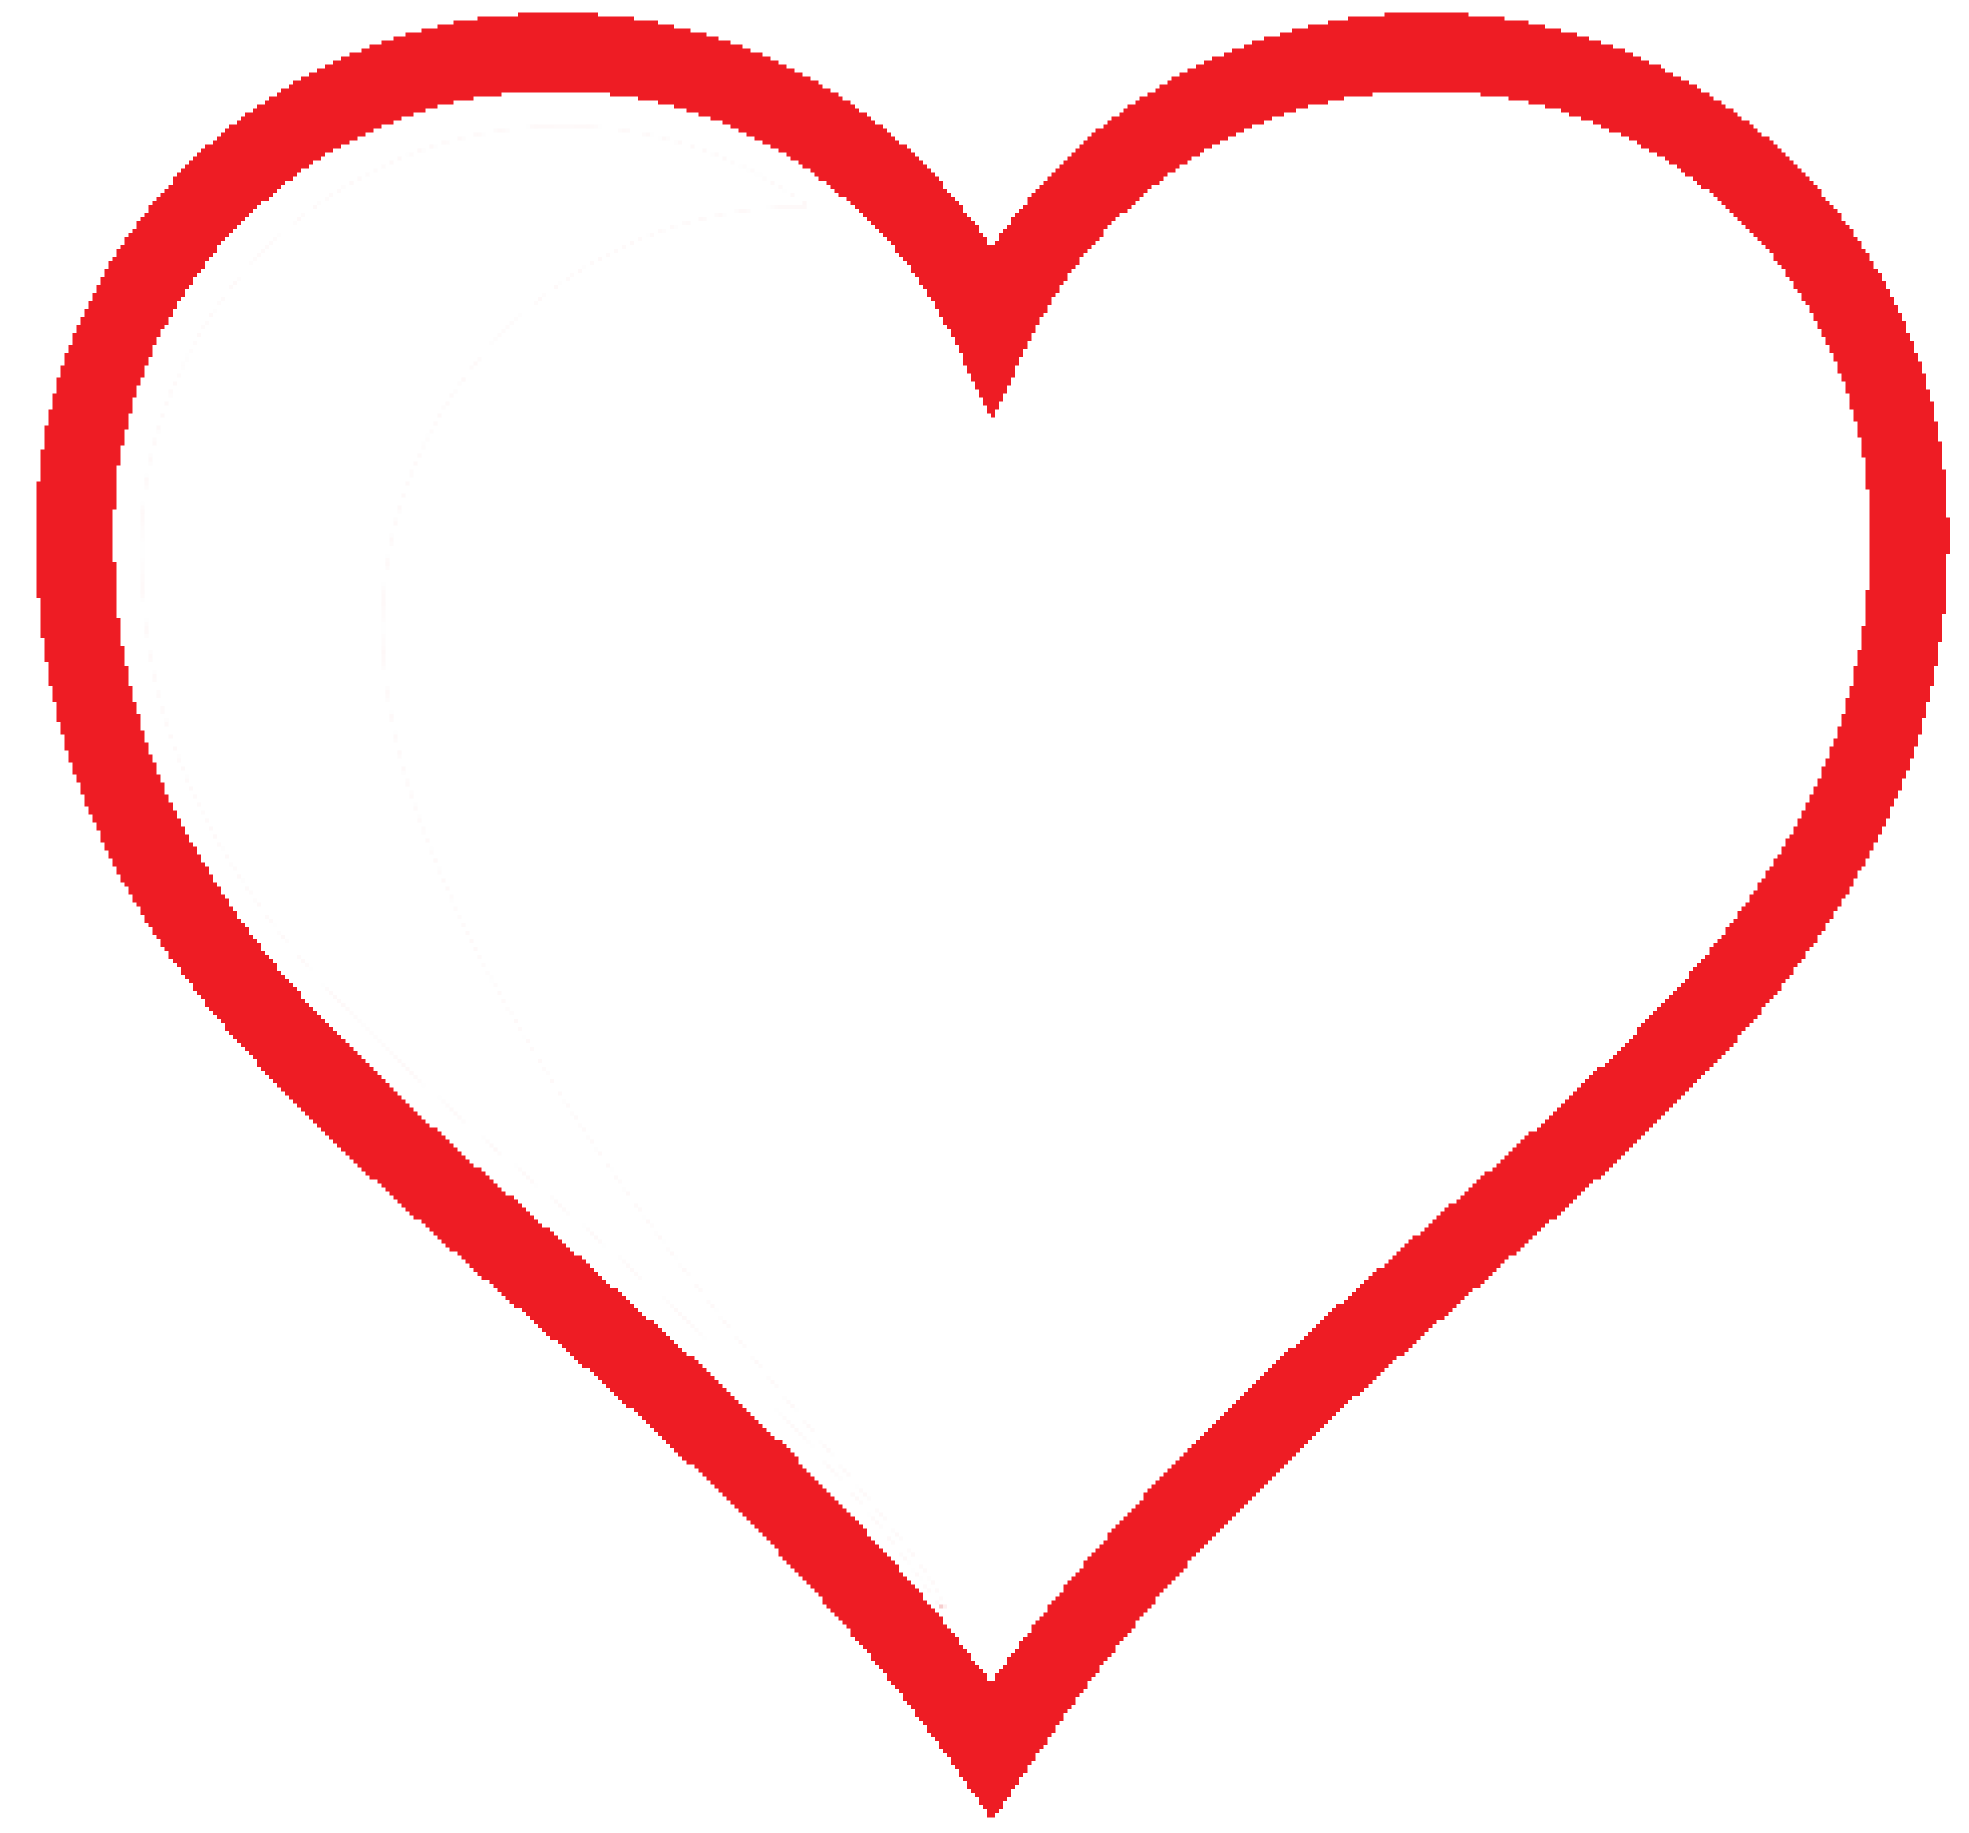 Valentines heart png. Simple clipart at getdrawings